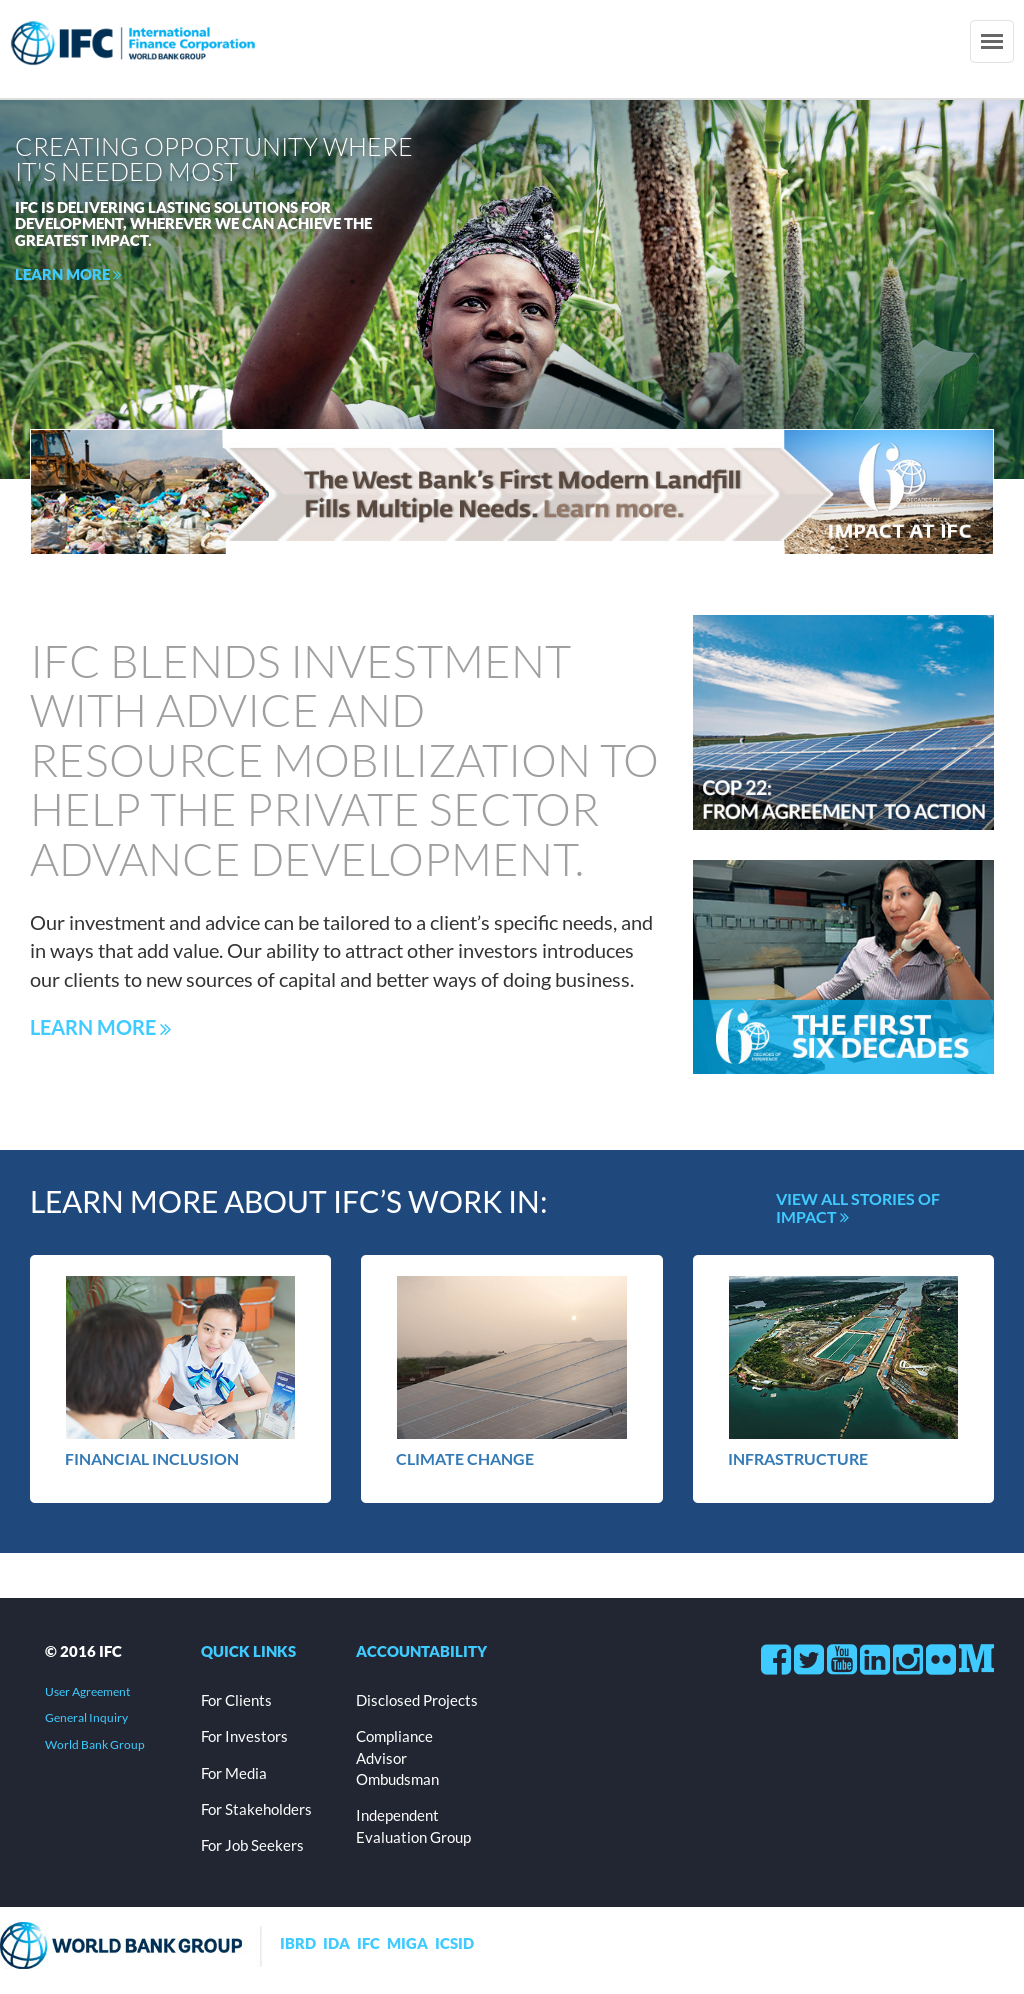 IFC Competitors, Revenue and Employees - Owler Company Profile